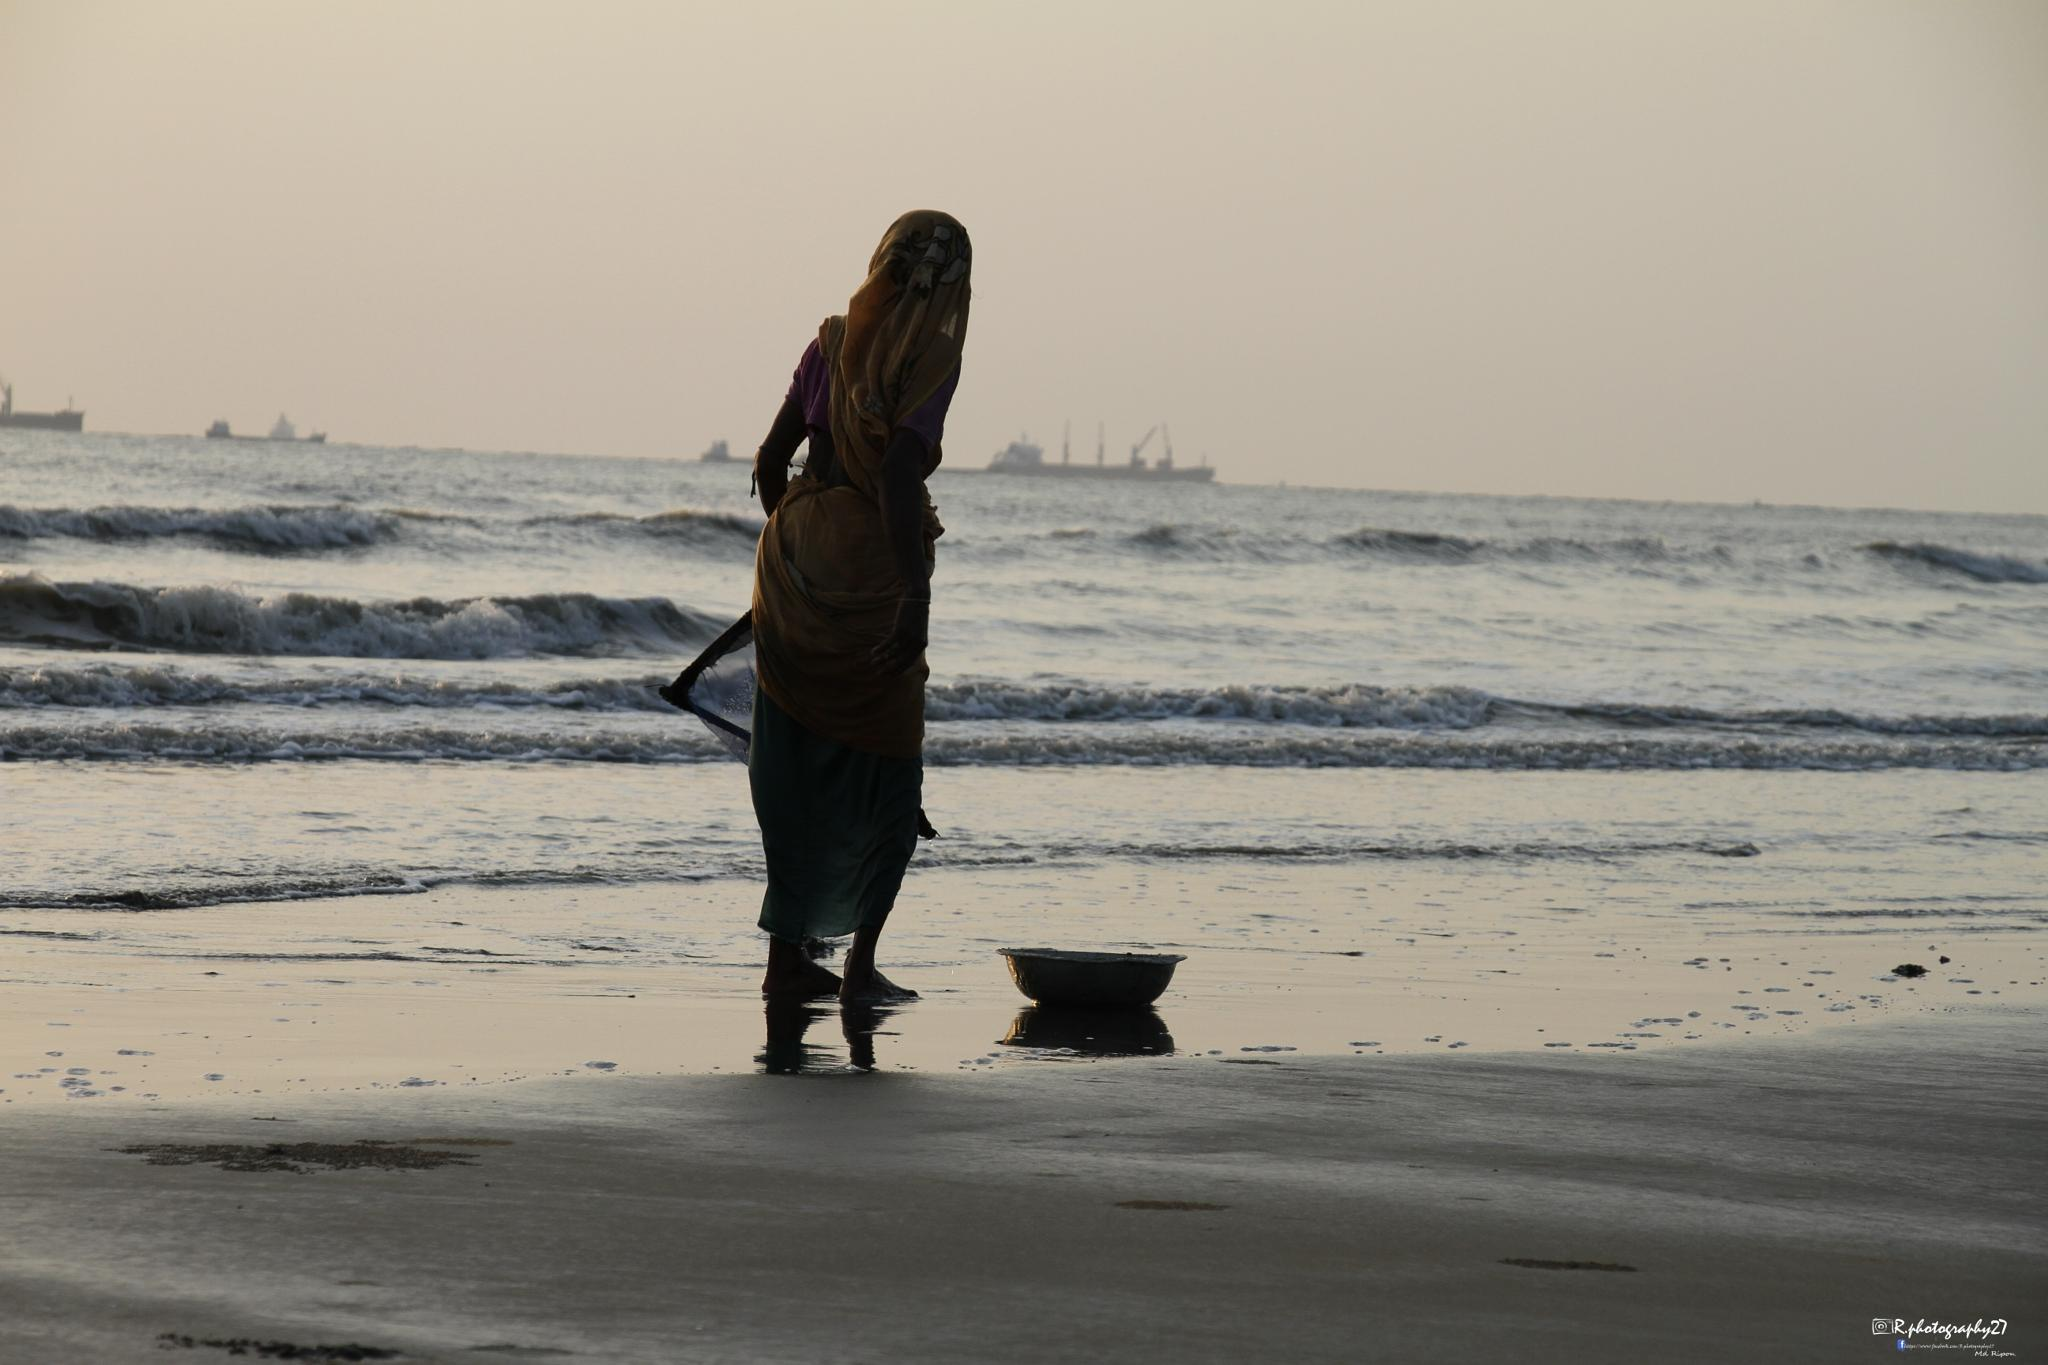 working woman at island 4 by Md Ripon ©R.photography27